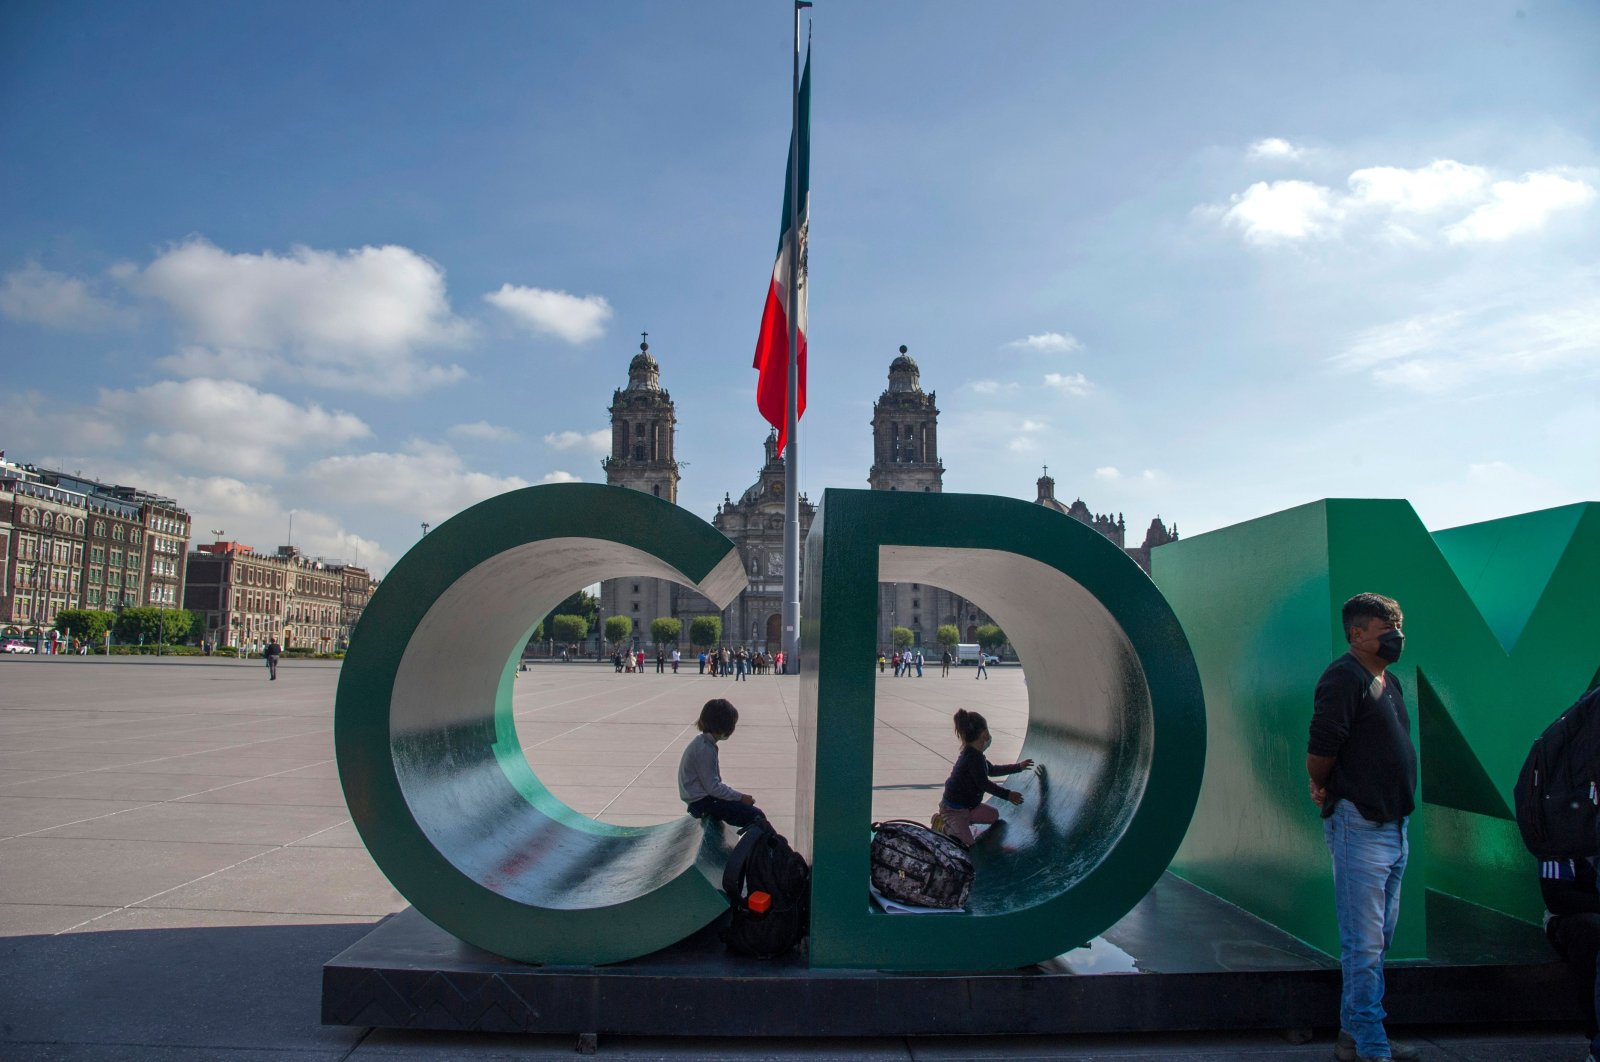 Children plays at Zocalo square in the historic center of Mexico City, Mexico on July 22, 2020, amid the COVID-19 pandemic. (AFP Photo)